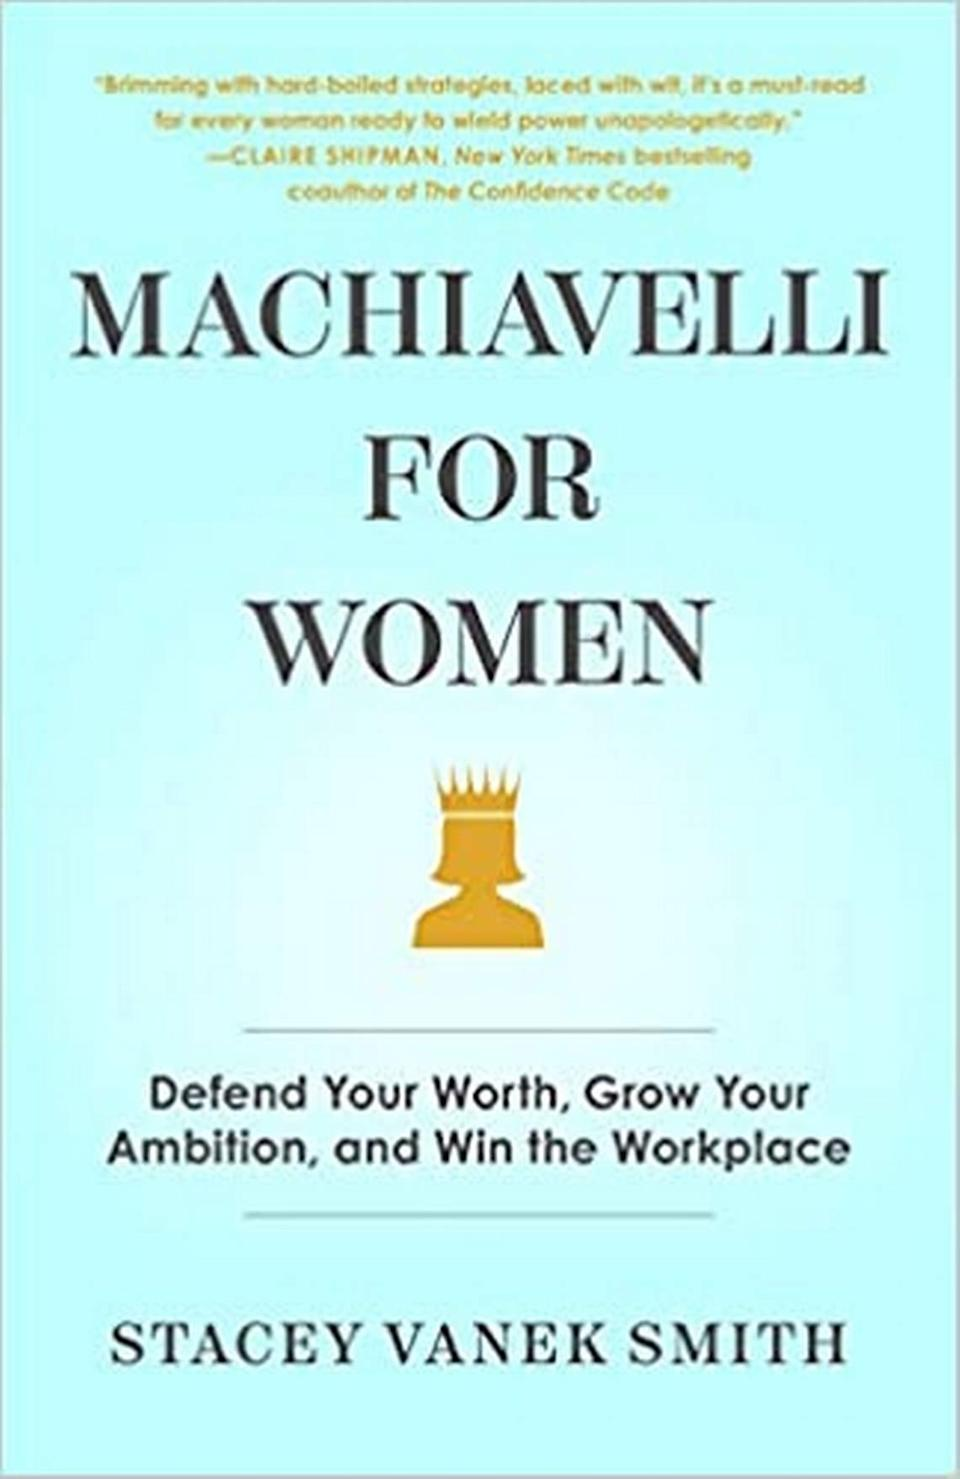 """""""Machiavelli for Women: Defend Your Worth, Grow Your Ambition, and Win the Workplace,"""" by Stacey Vanek Smith."""